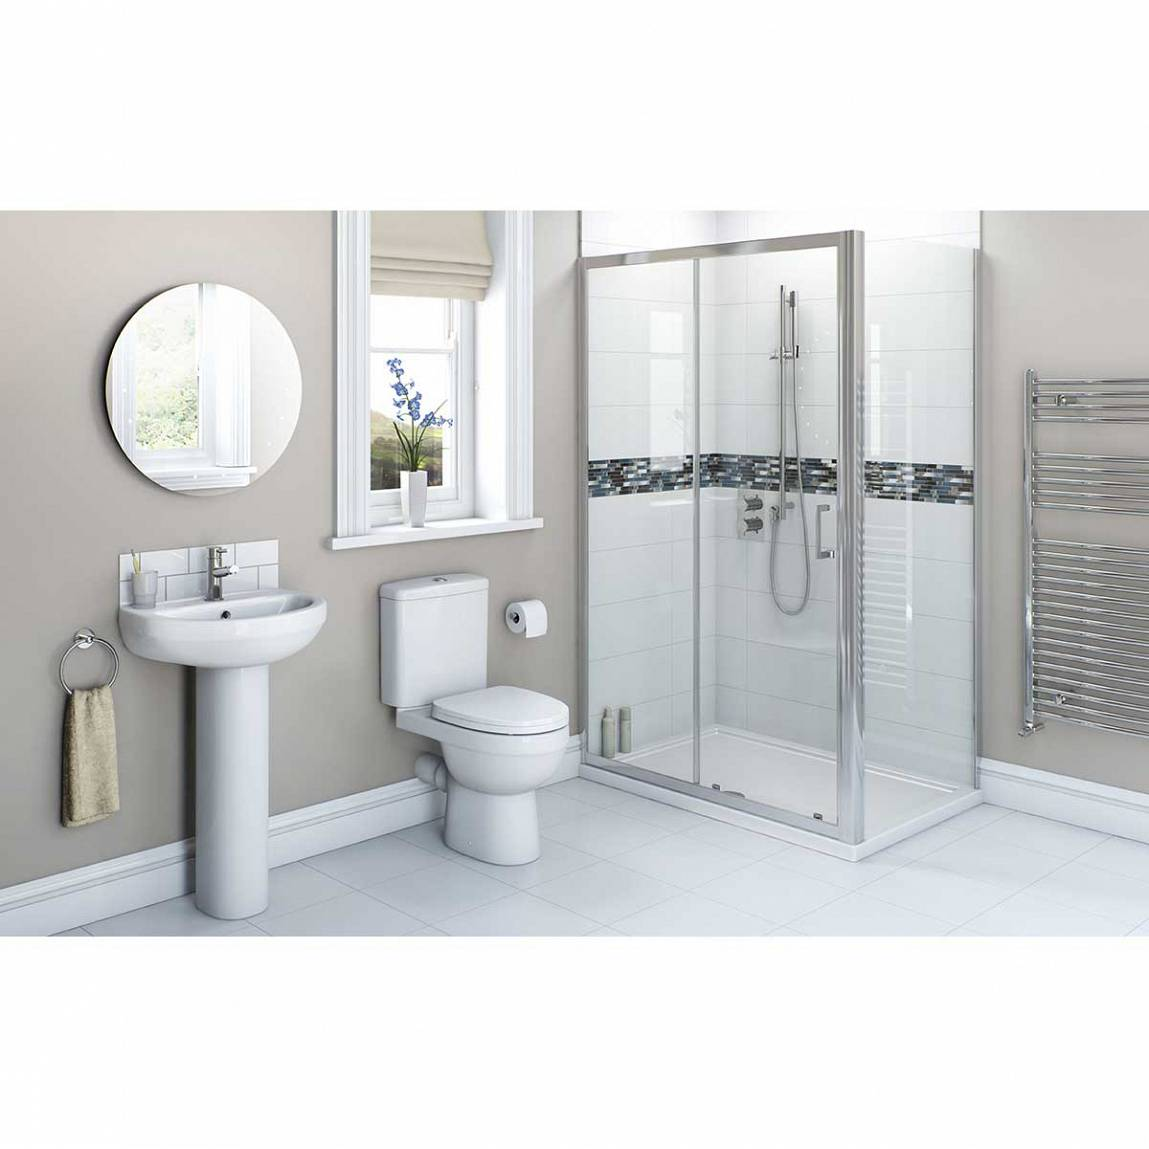 Image of Energy Bathroom set with 1200x900 Sliding Enclosure & Tray